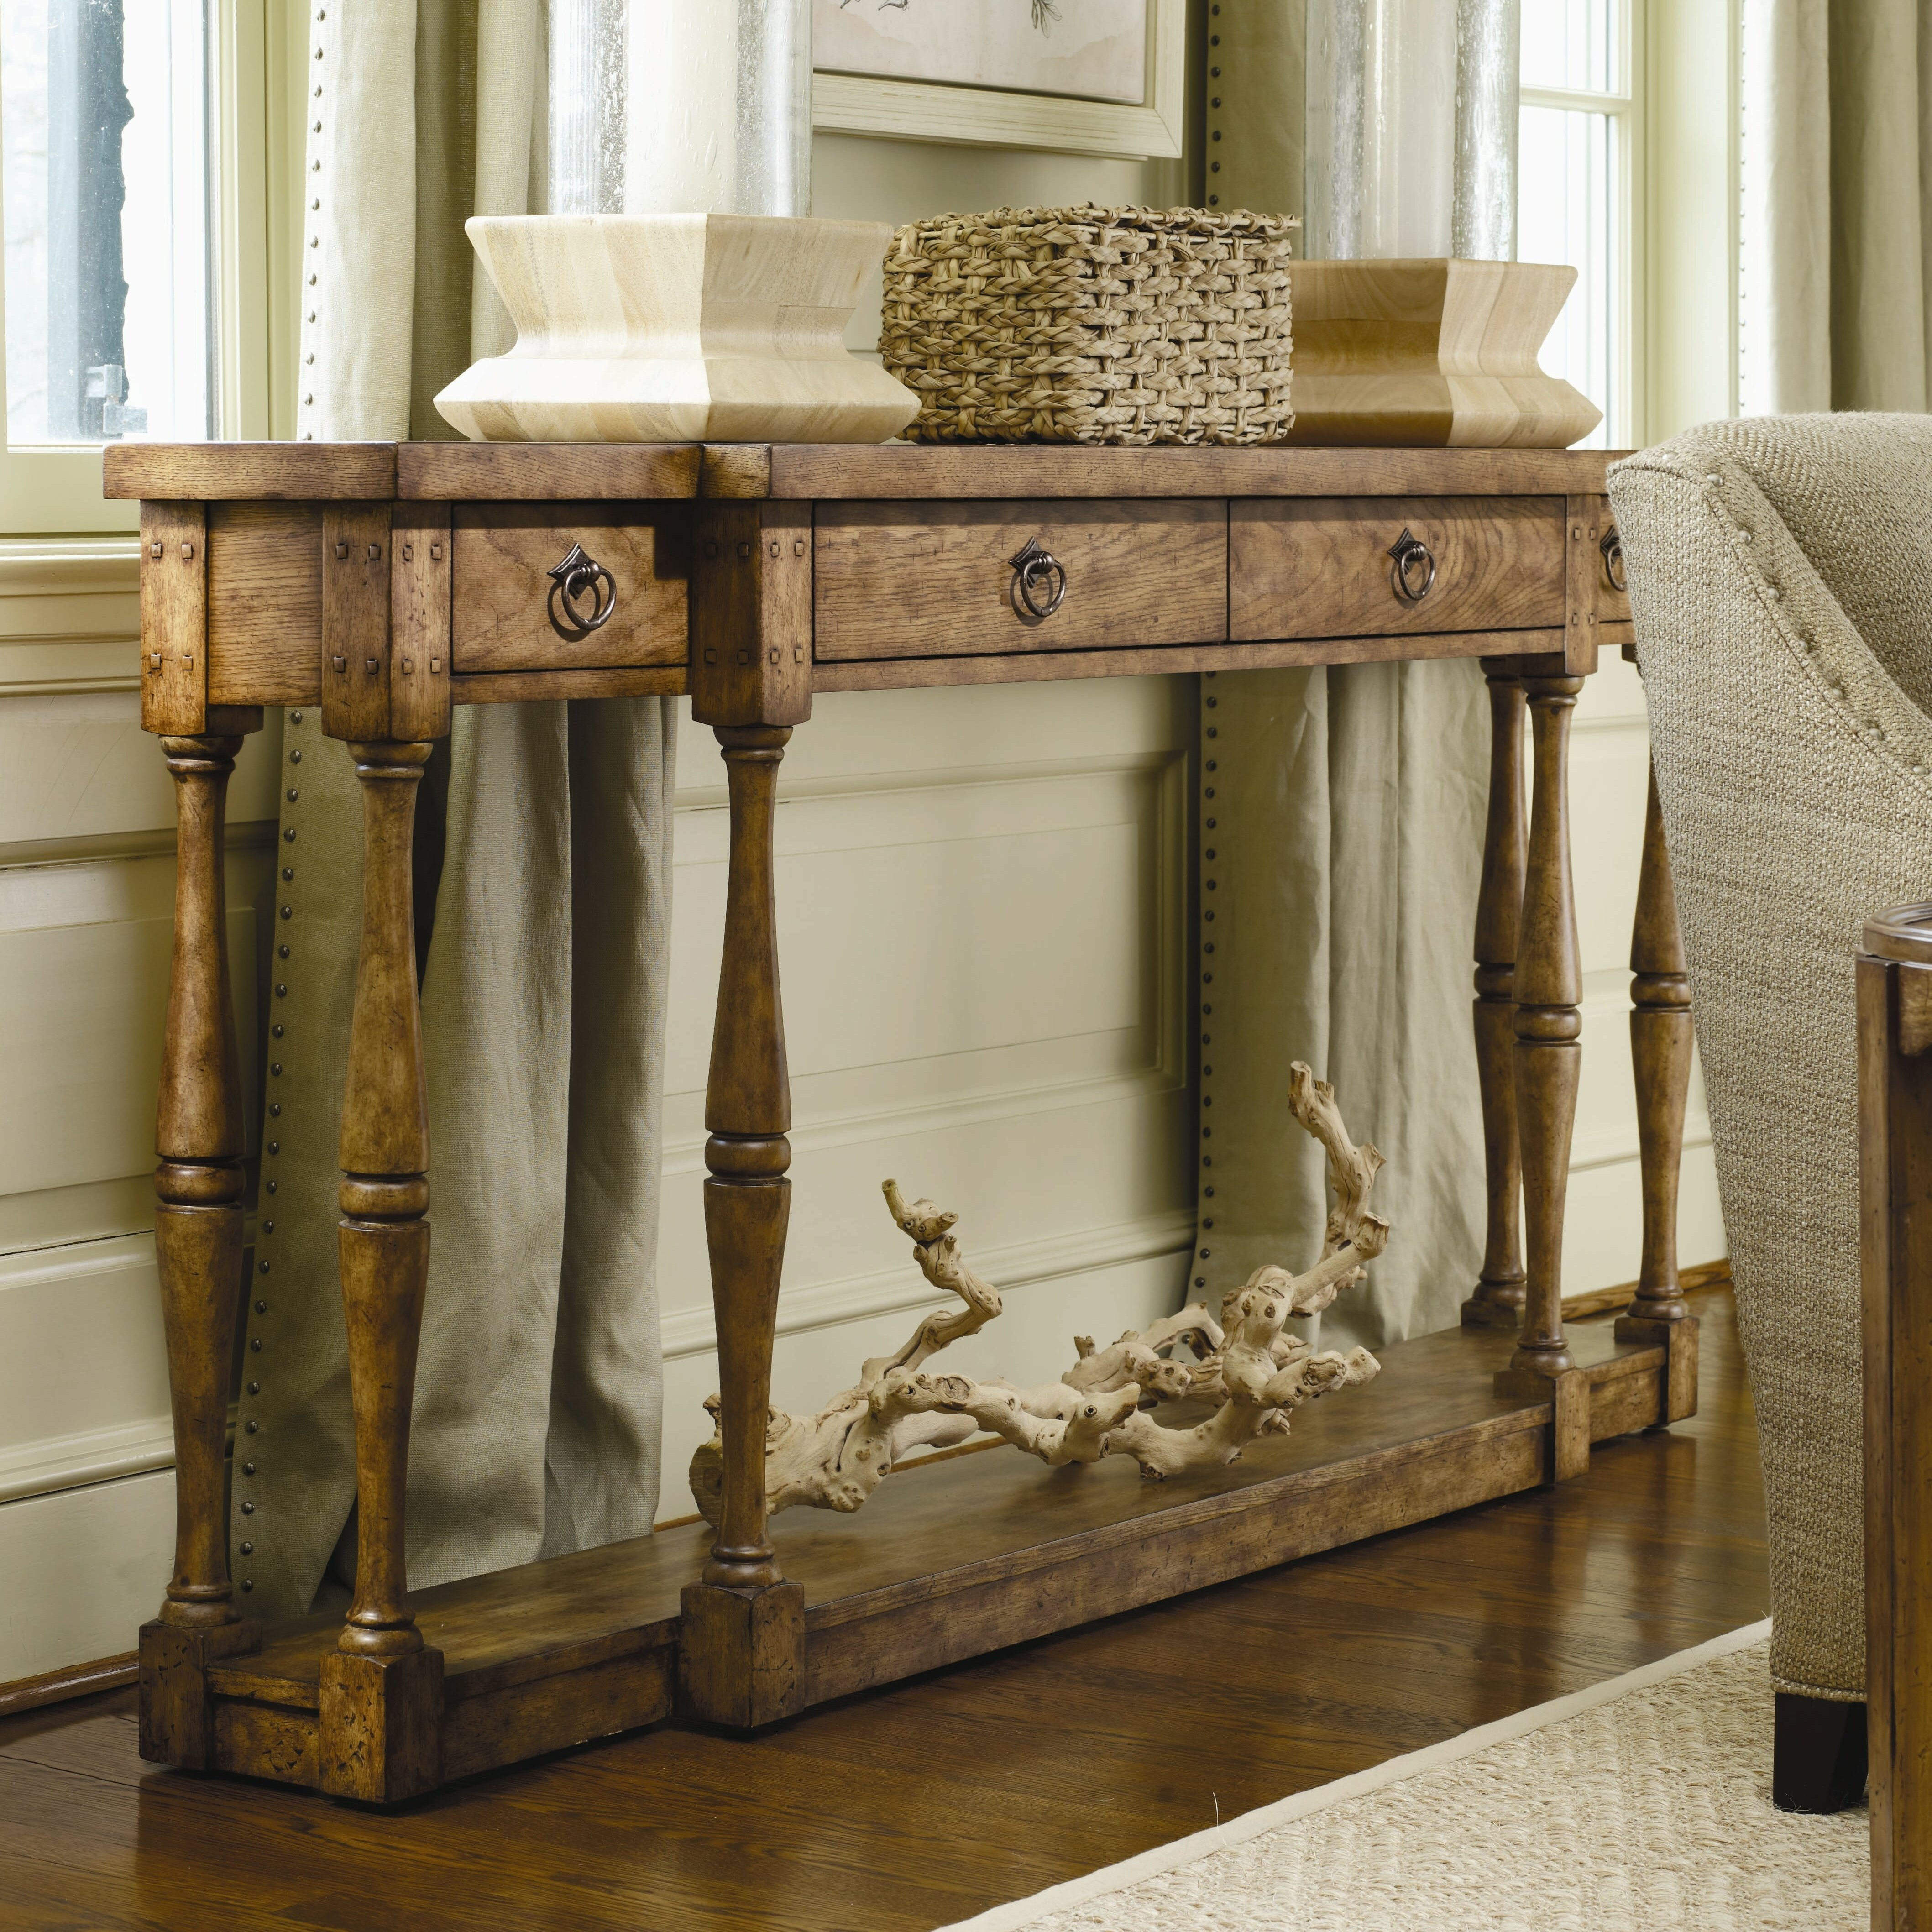 Hooker Furniture Sanctuary 4 Drawer Console Table